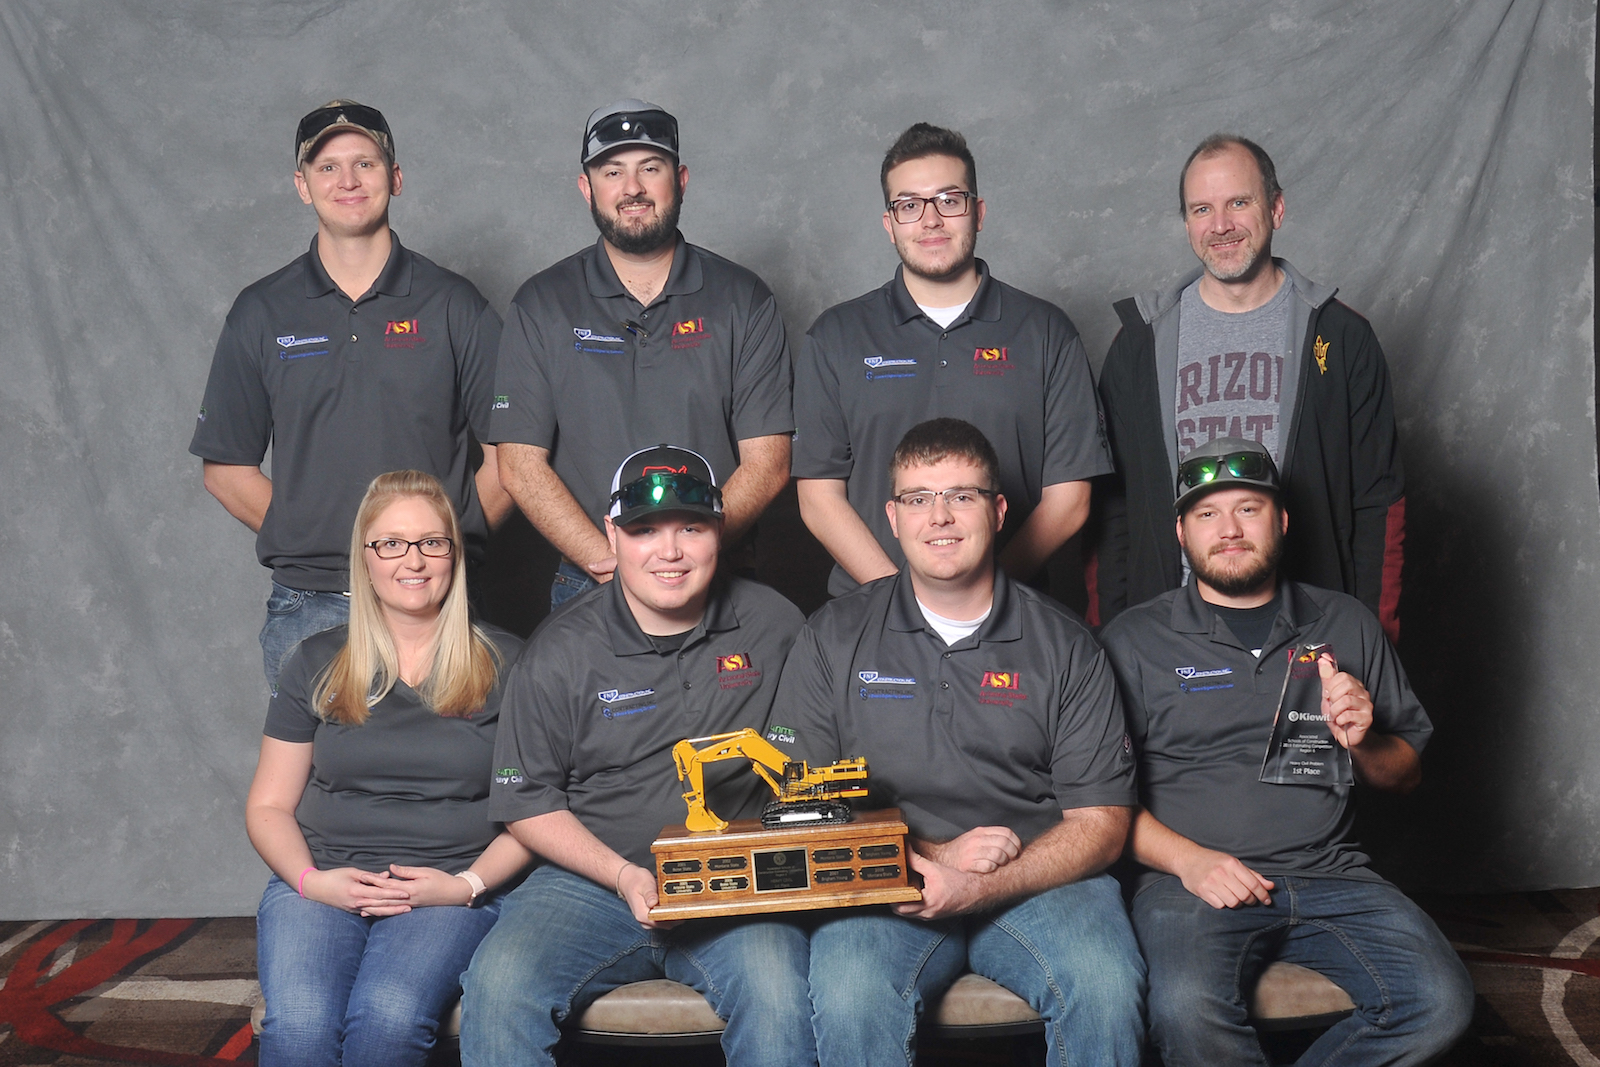 Photo of eight people posed holding a trophy. Caption: First-place heavy/civil team: (left to right, back to front) Jacob Dittbrenner, Samuel Schlinger, Nathan Eldodt, coach Aaron Cohen, Brittany Wells, Tanner Schafersman, Jacob Ellis and Shay Snider. Photo by Associated Schools of Construction for Regions 6 and 7